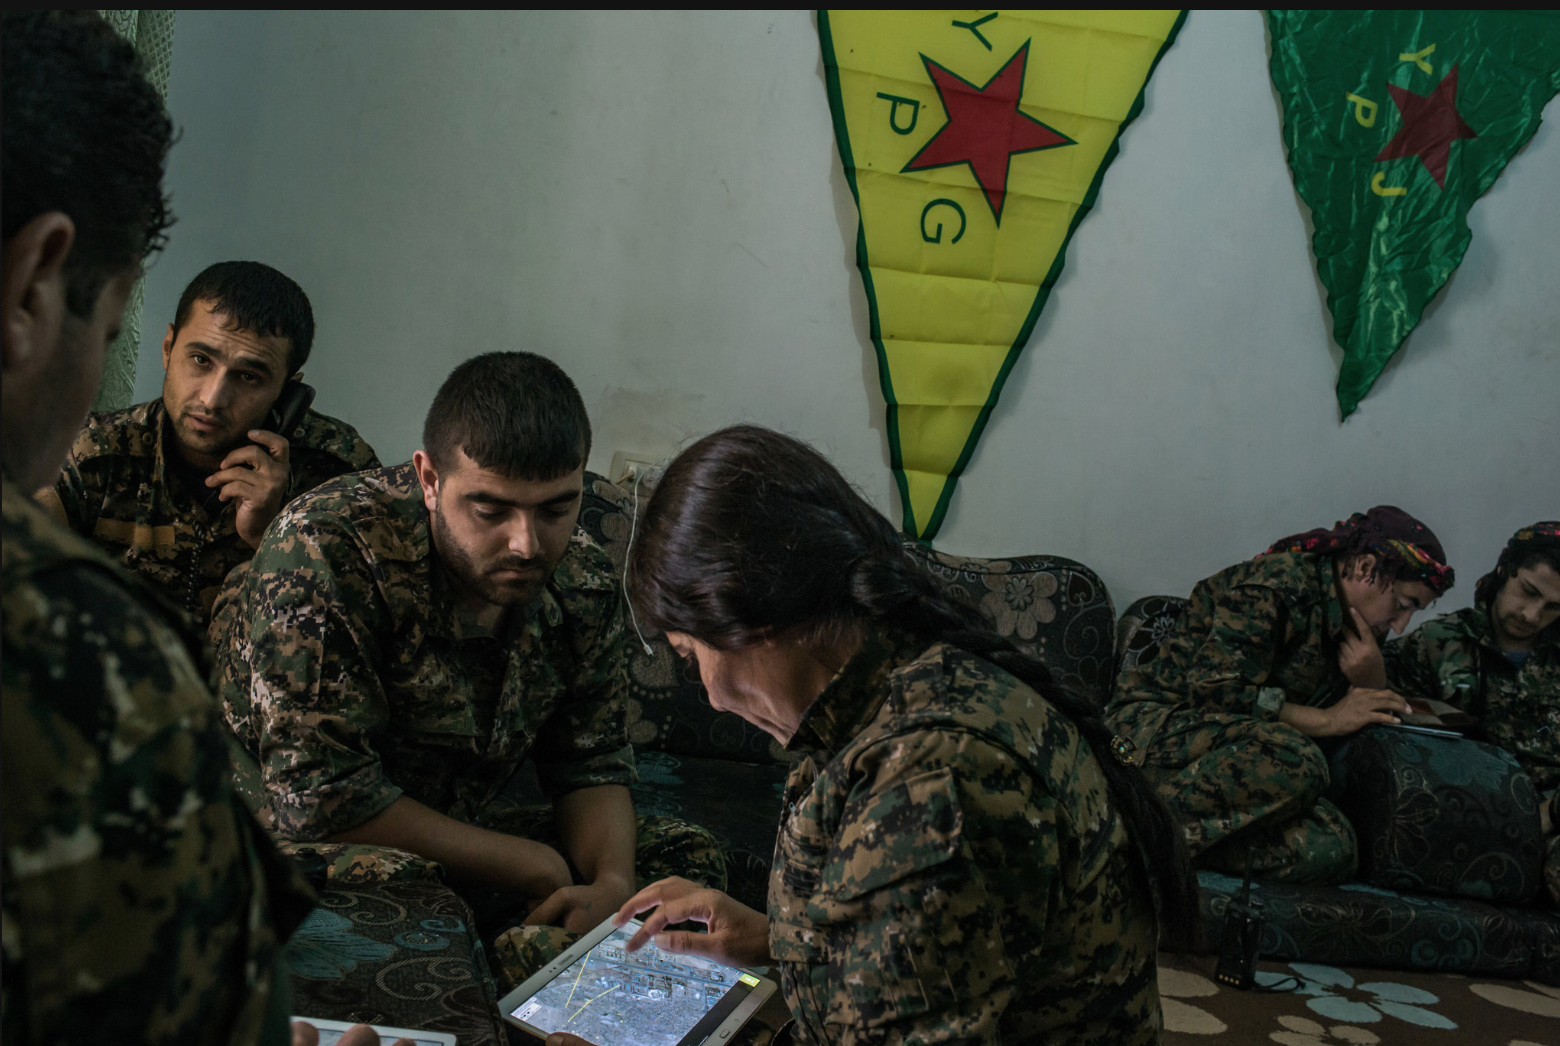 Kurds checking targets on tablets' maps to determine where Ameican combat missions may strike